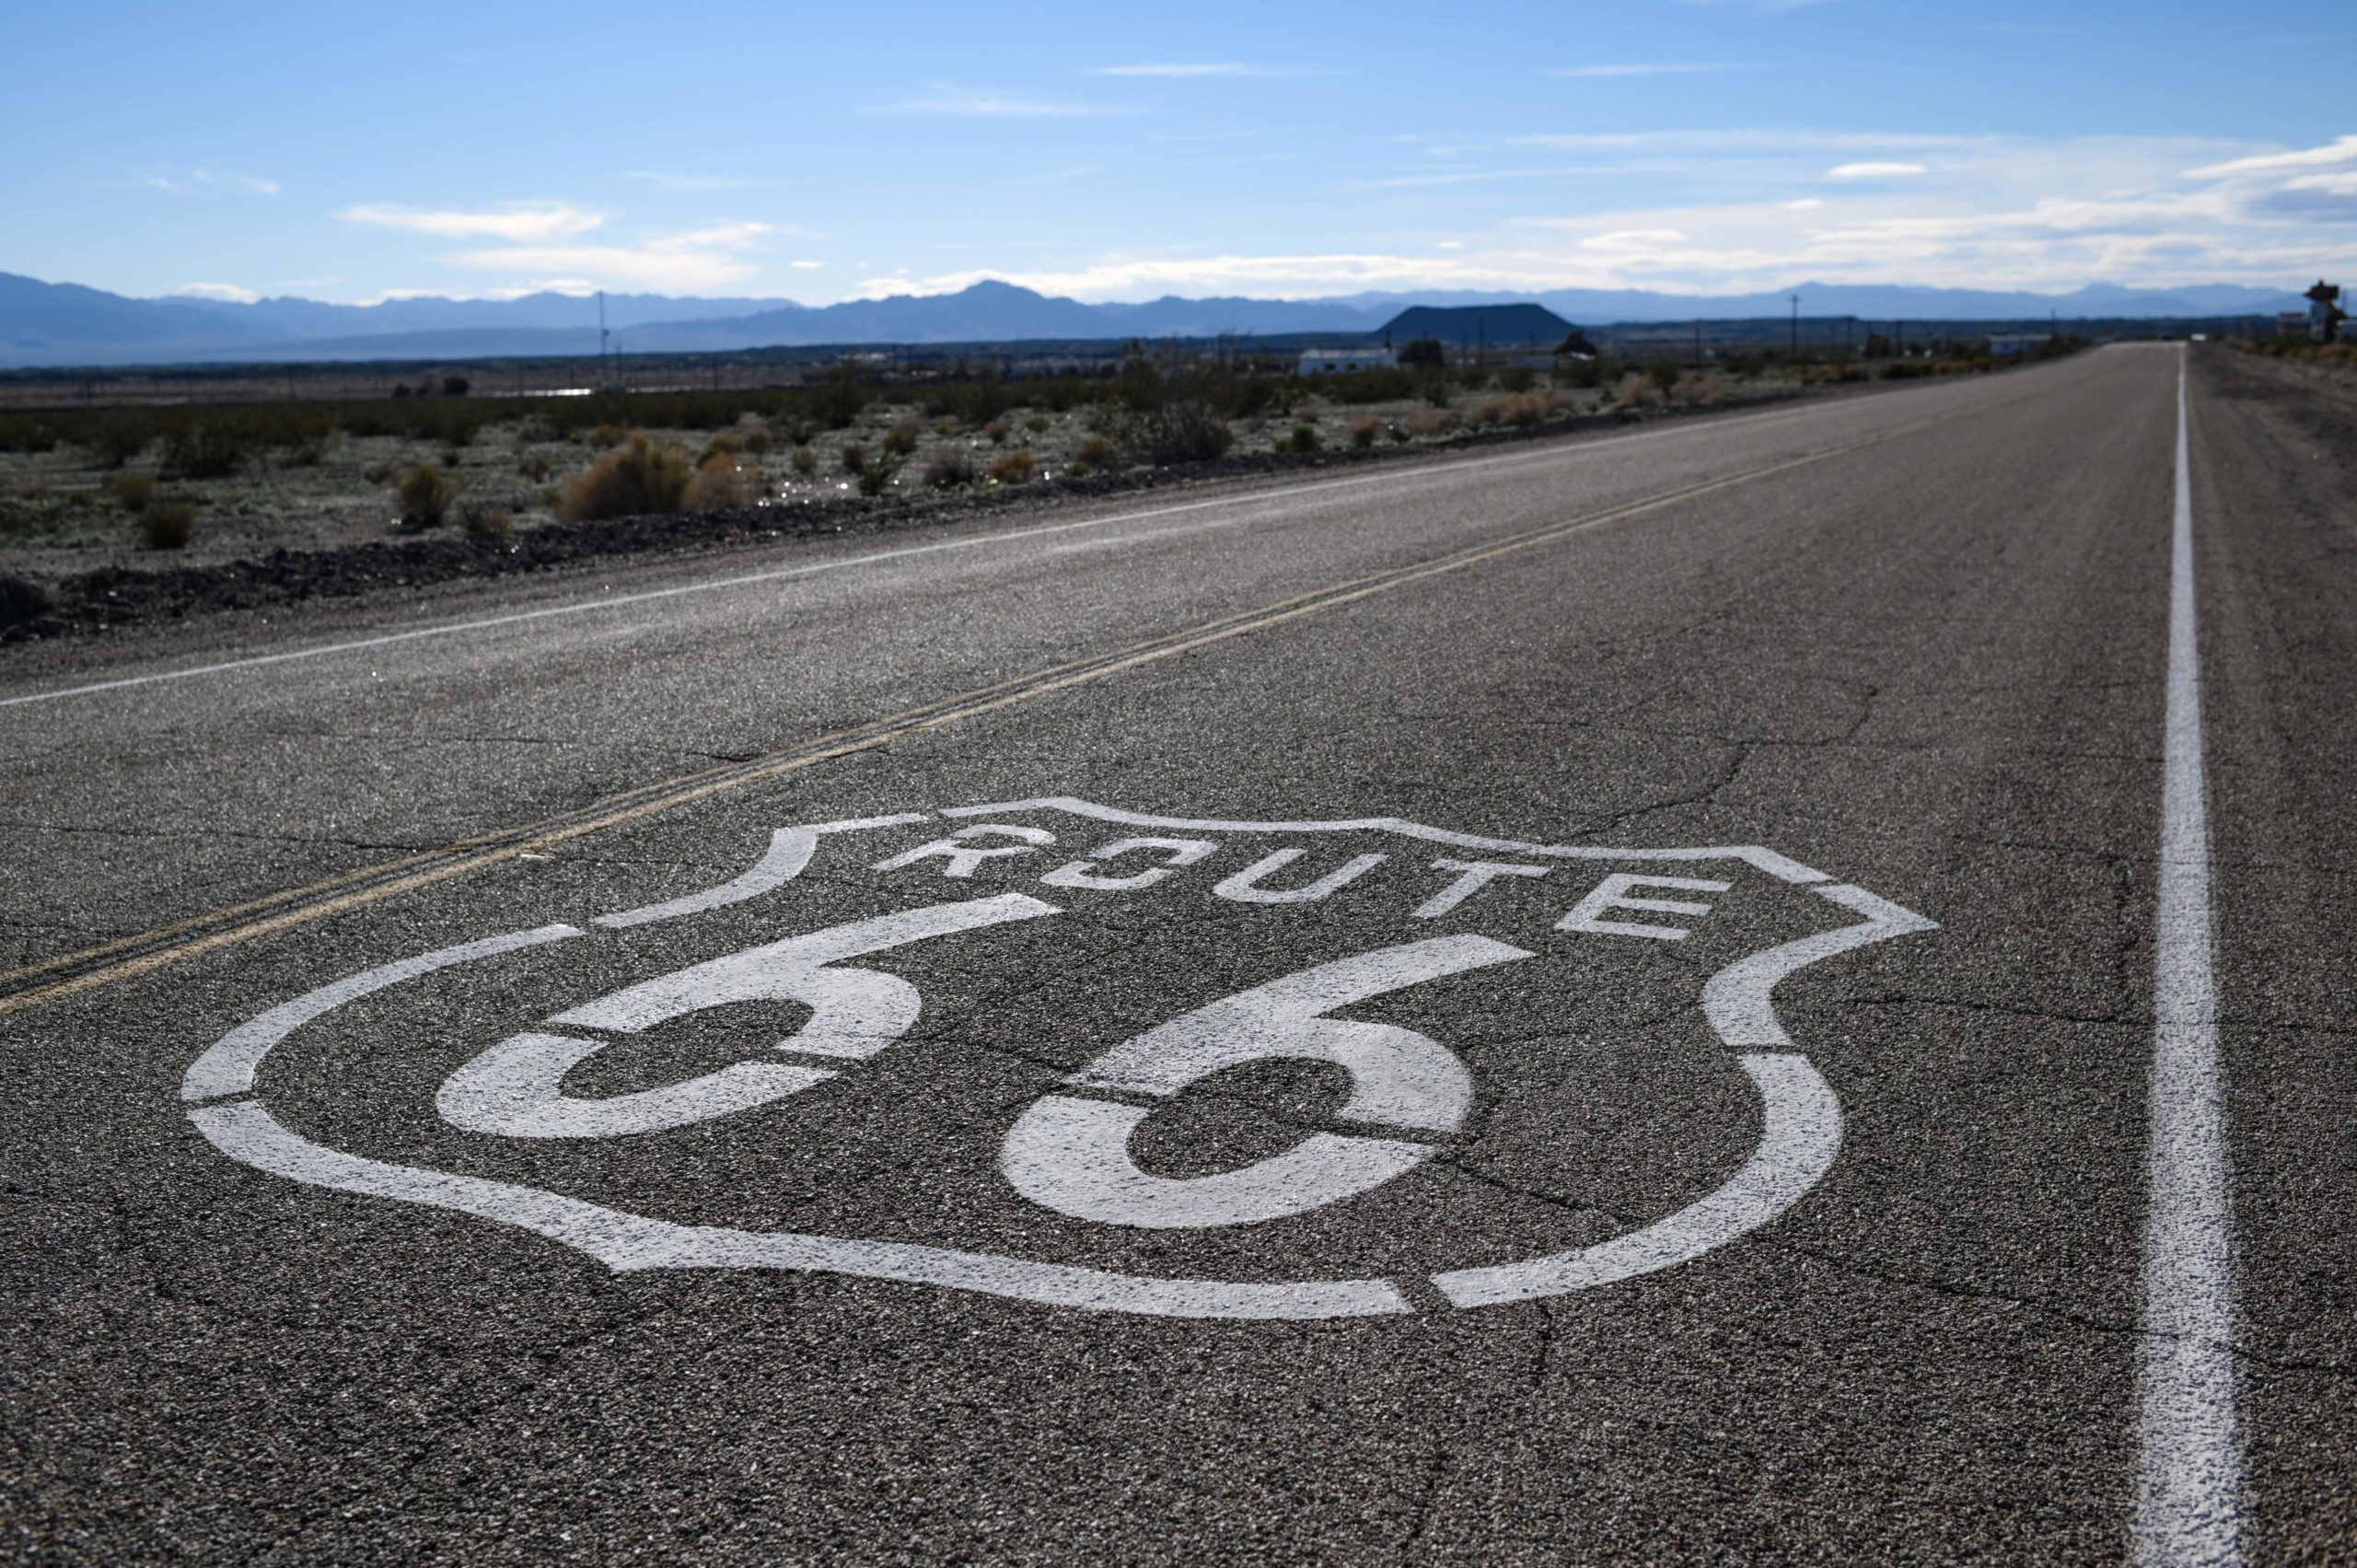 """A """"Route 66"""" sign is painted on the asphalt near Amboy in the Mojave Desert in California on February 27, 2019. - US.Route 66 (US 66 or Route 66), also known as the Will Rogers Highway, the Main Street of America or the Mother Road, was one of the original highways in the US Highway System. US 66 was established on November 11, 1926. The highway, which became one of the most famous roads in the United States, originally ran from Chicago, Illinois, through Missouri, Kansas, Oklahoma, Texas, New Mexico, and Arizona before ending in Santa Monica in Los Angeles County, California, covering a total of 2,448 miles (3,940 km). (Photo by Eric BARADAT / AFP) (Photo credit should read ERIC BARADAT/AFP via Getty Images)"""